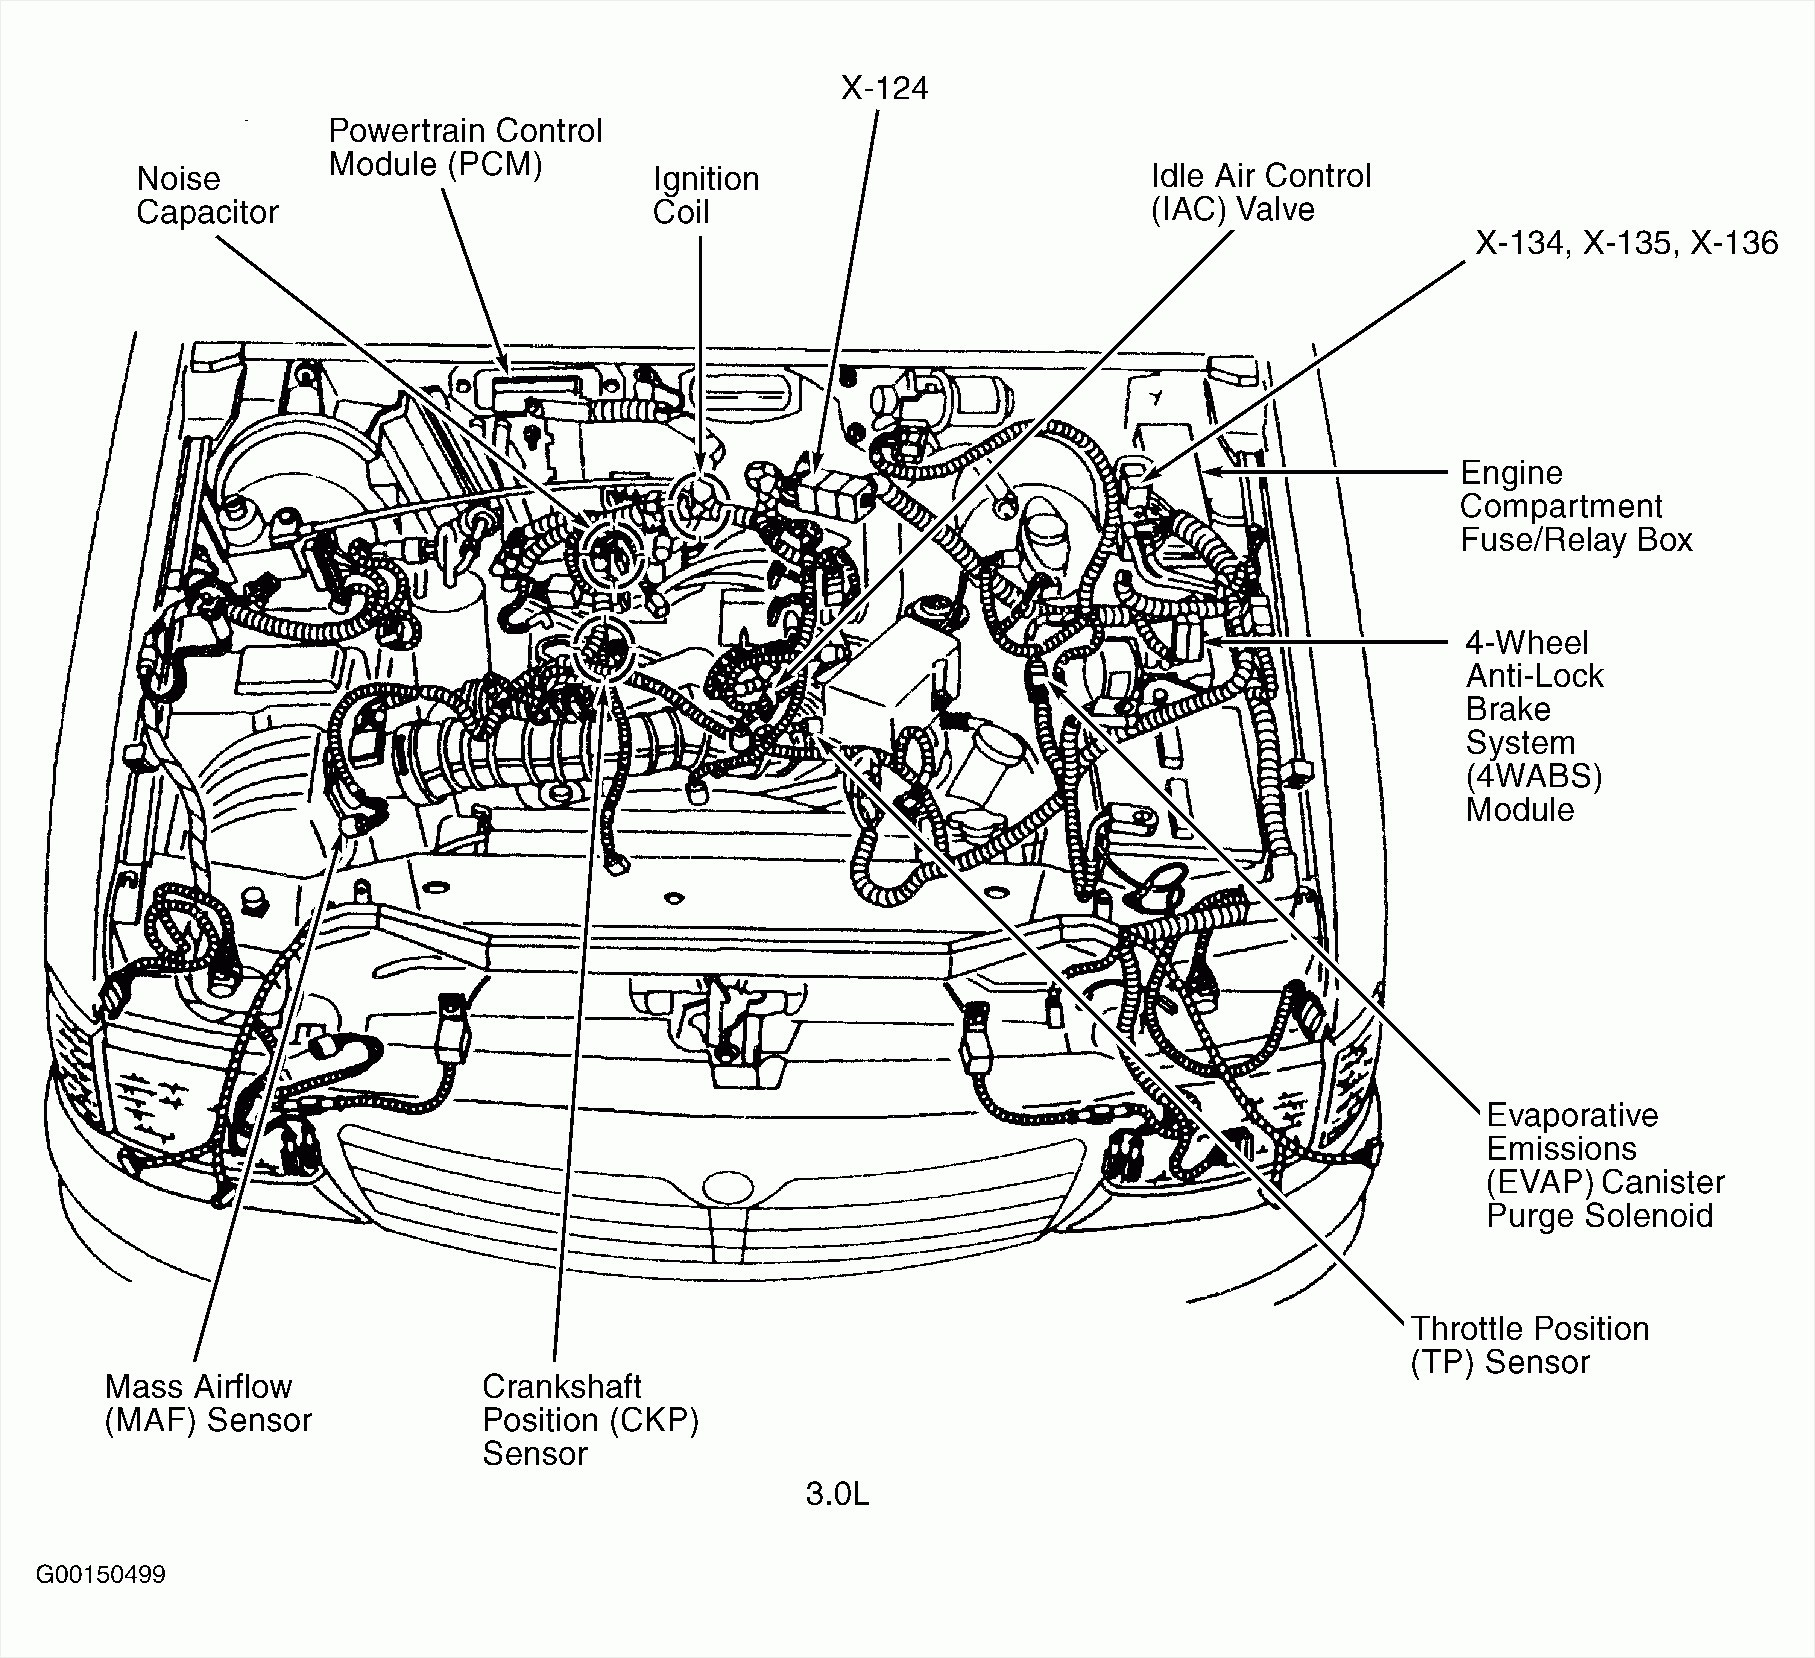 2010 jetta engine diagram wiring diagram m6 Volkswagen 1.8T Engine Diagram jetta tdi engine diagram wiring diagram 2010 vw jetta engine fuse box diagram 2010 jetta engine diagram